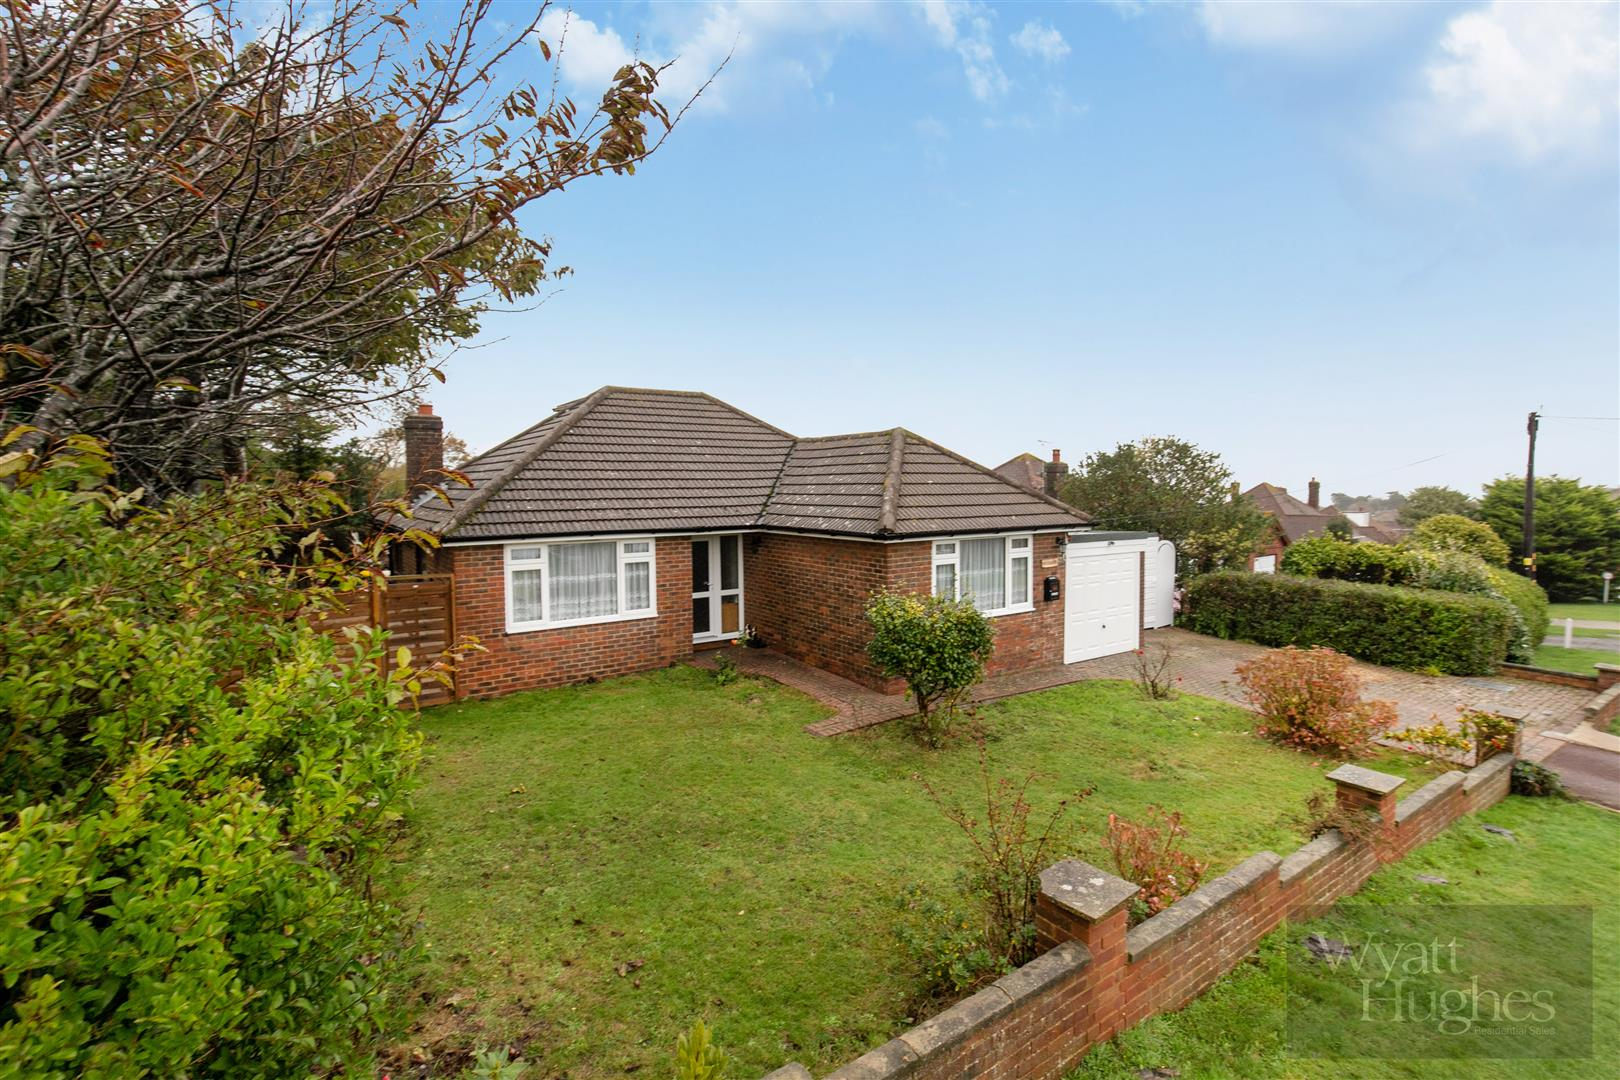 2 bed detached-bungalow for sale in Fyrsway, Hastings, TN35